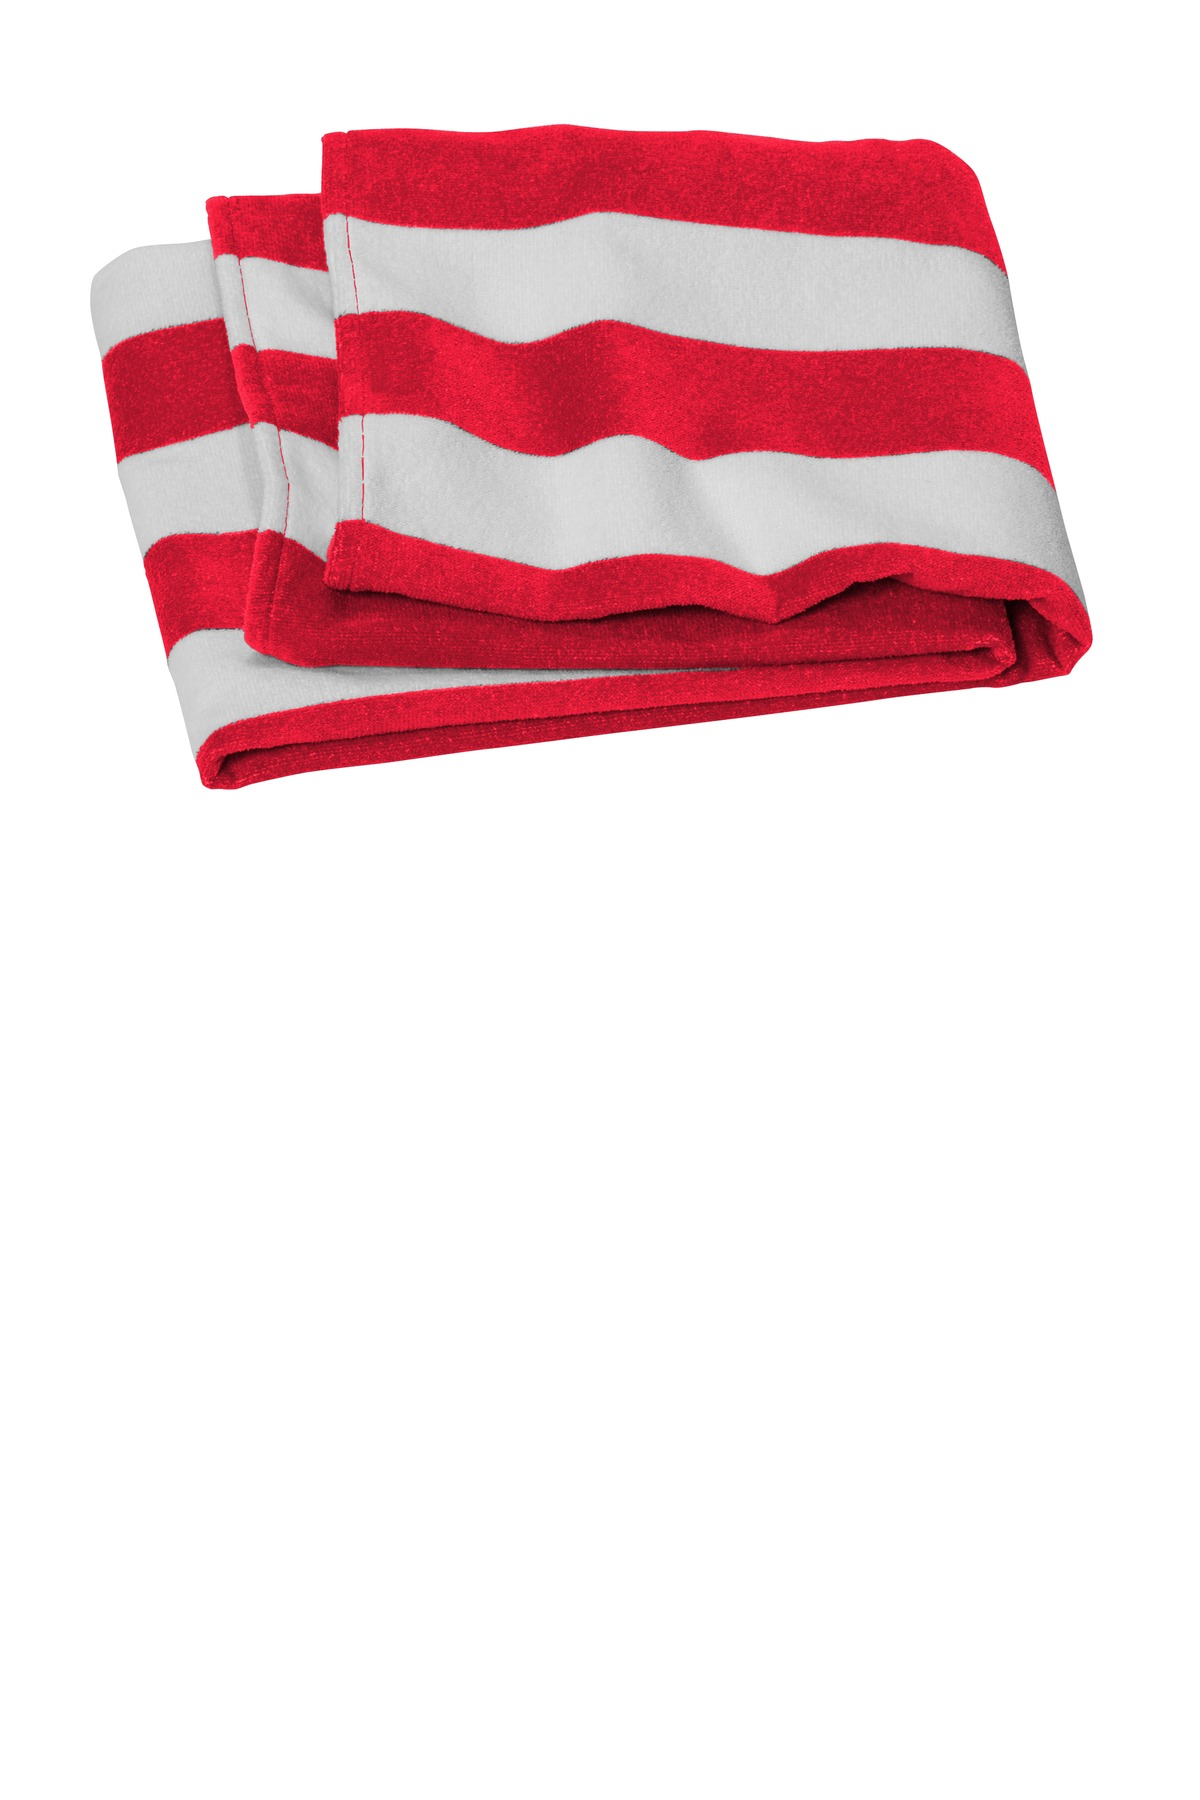 Port Authority  ®  Value Cabana Stripe Beach Towel PT45 - Red